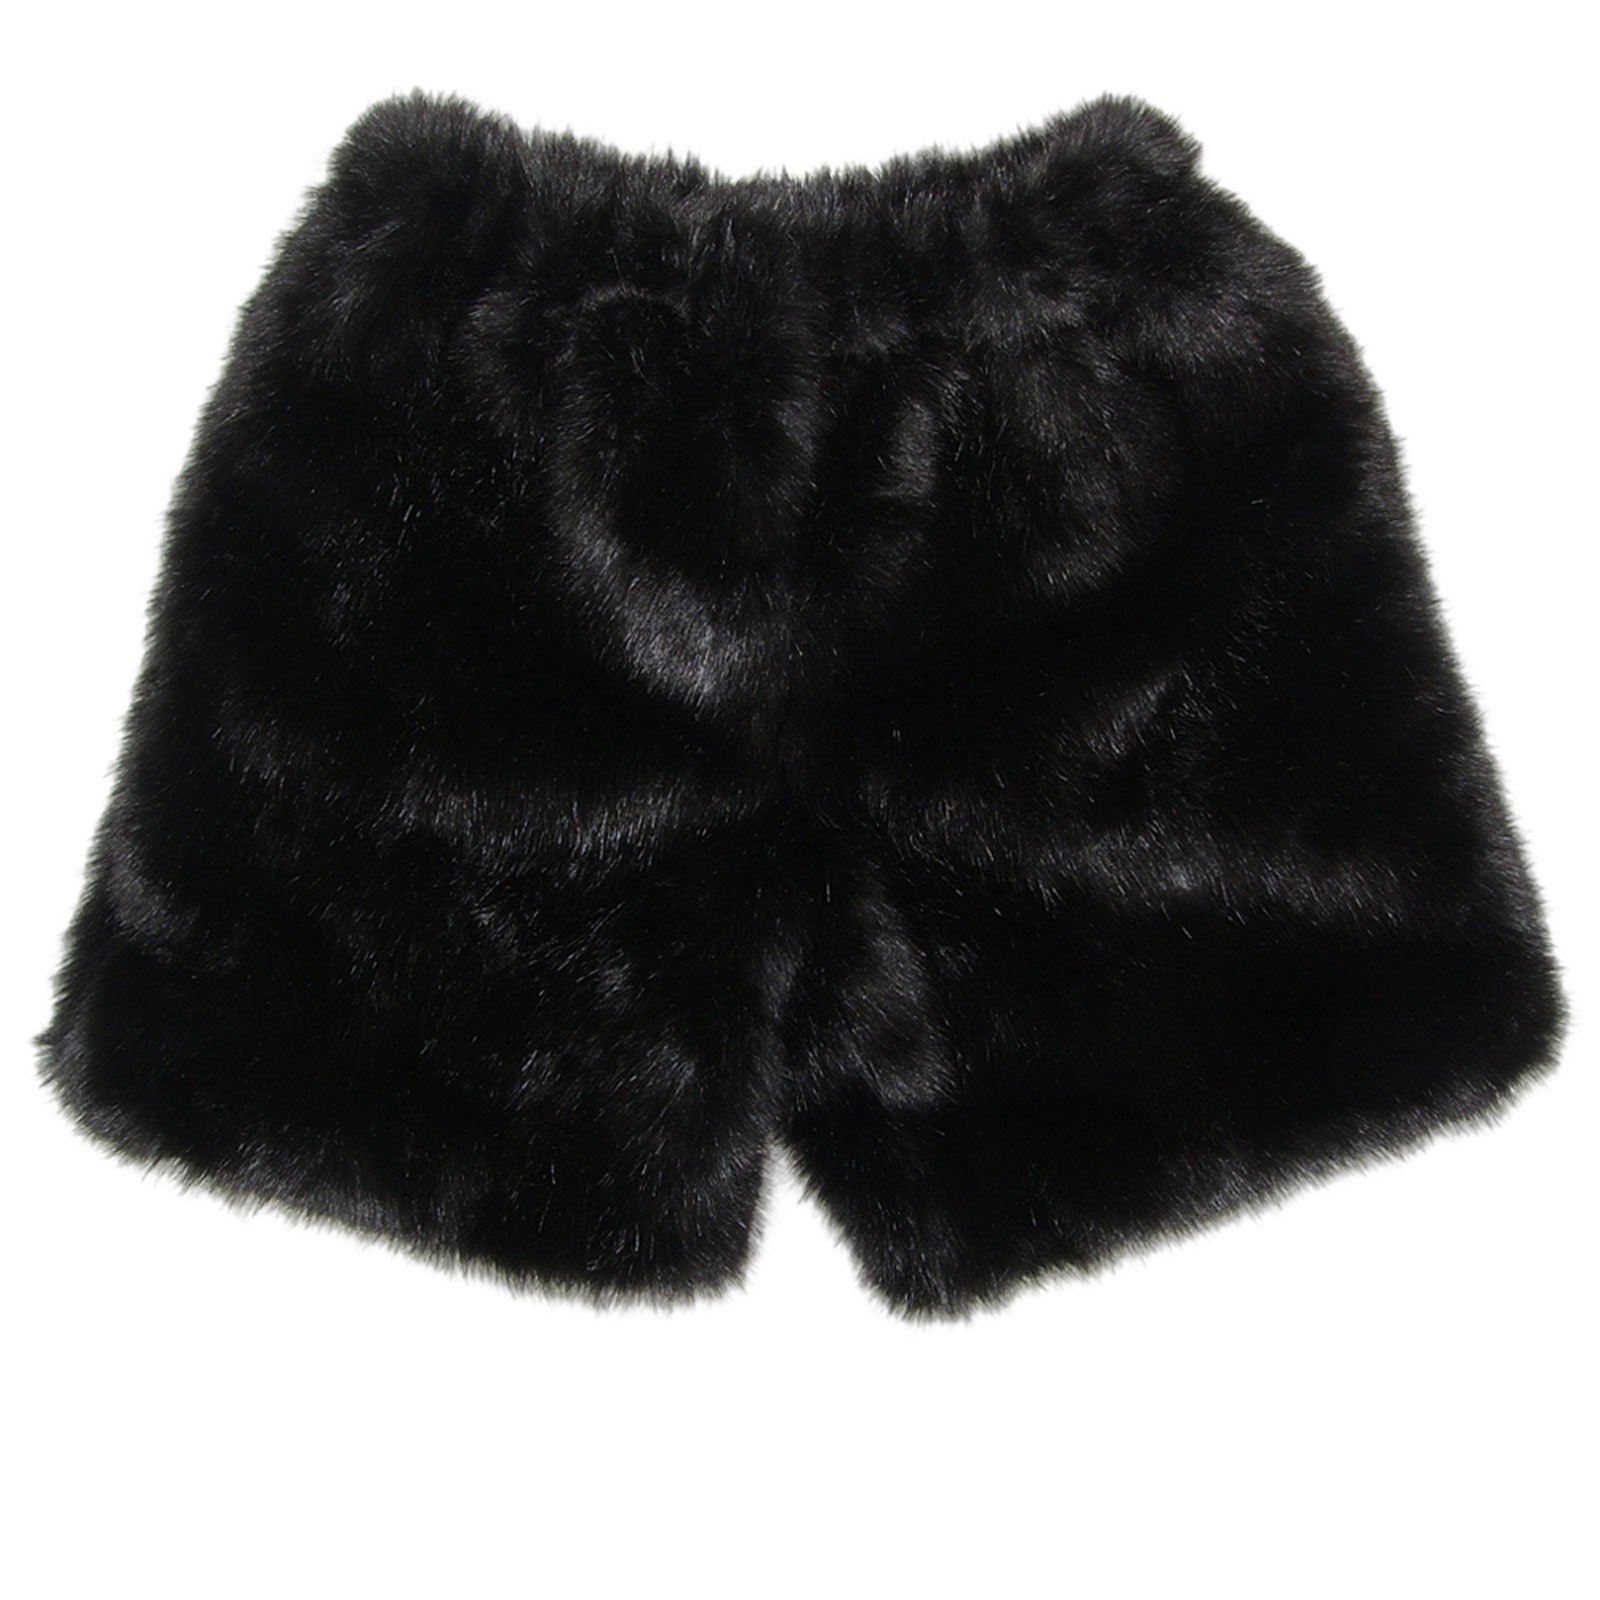 MinkgLove Fake Mink Boxers Silky Texture Feel, Fur Fly, Black - Single Sided Fur by MinkgLove